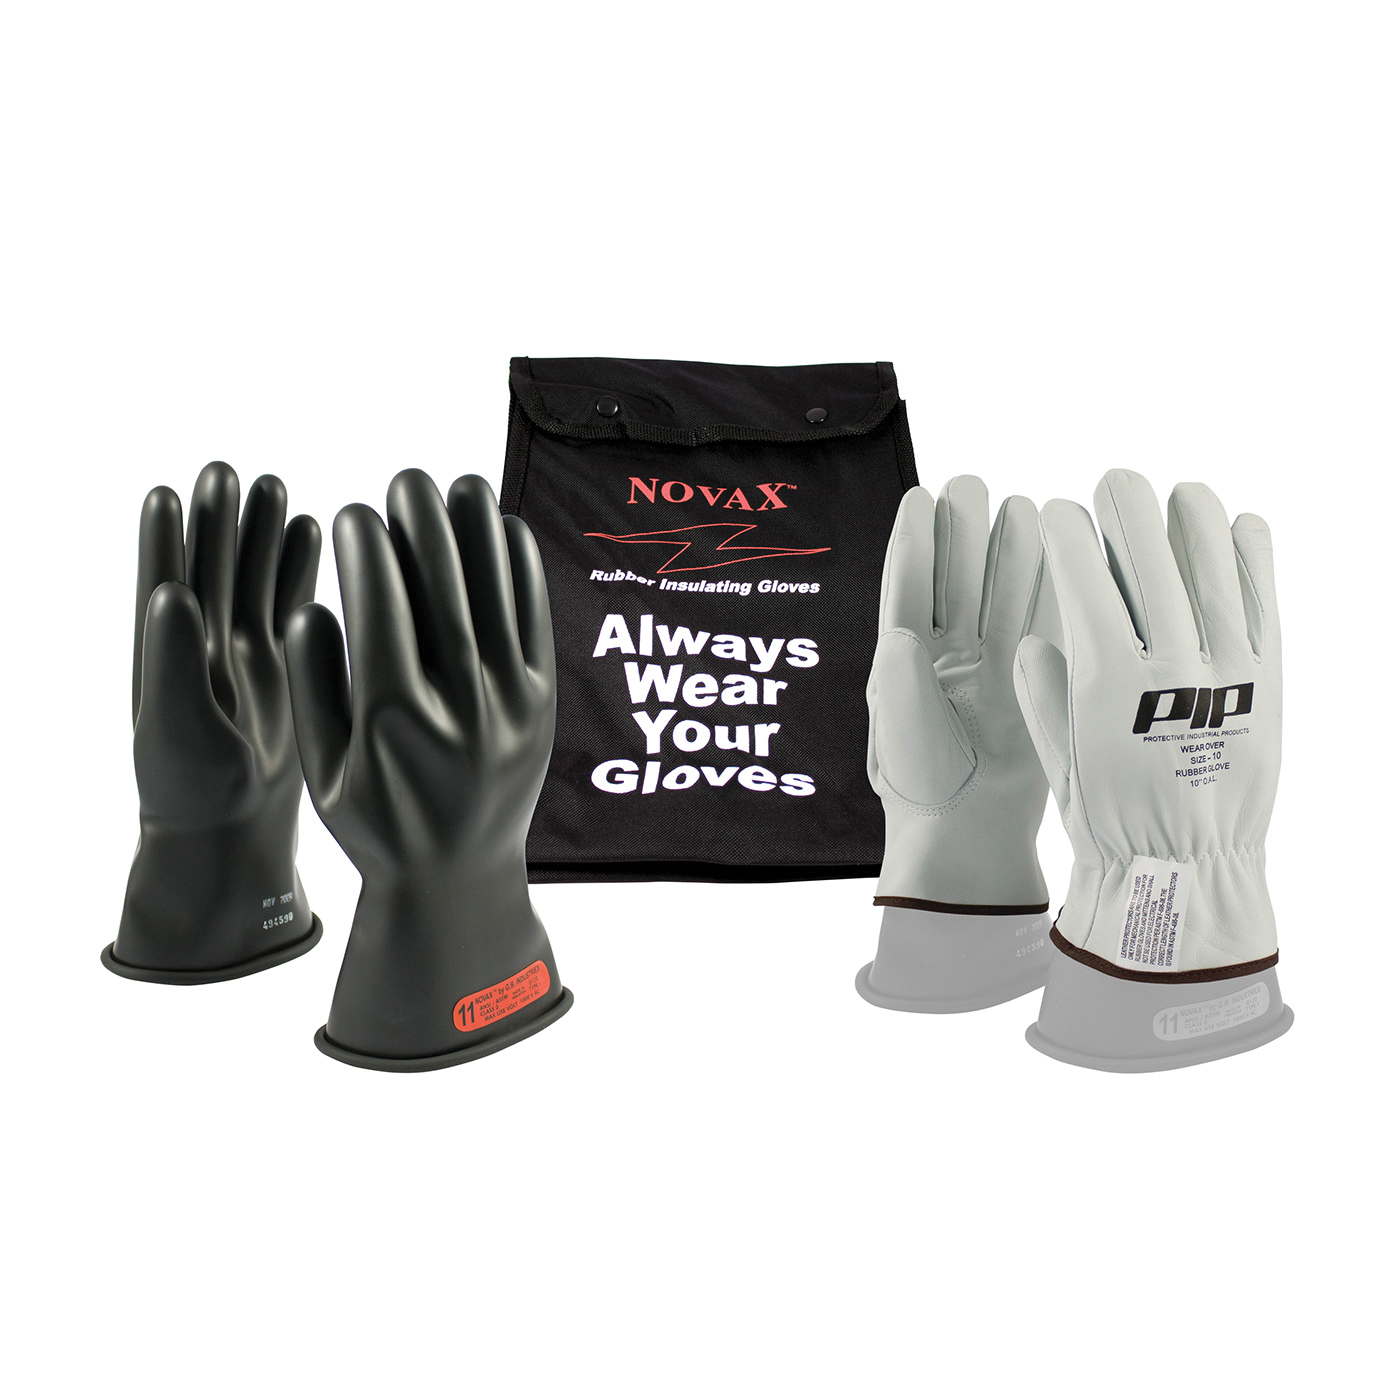 Novax® 150-SK-0/10-KIT Insulating Unisex Electrical Safety Gloves Kit, SZ 10, Goatskin Leather/Natural Rubber, Black/Natural, 11 in L, ASTM Class: Class 0, 1000 VAC, 1500 VDC Max Use Voltage